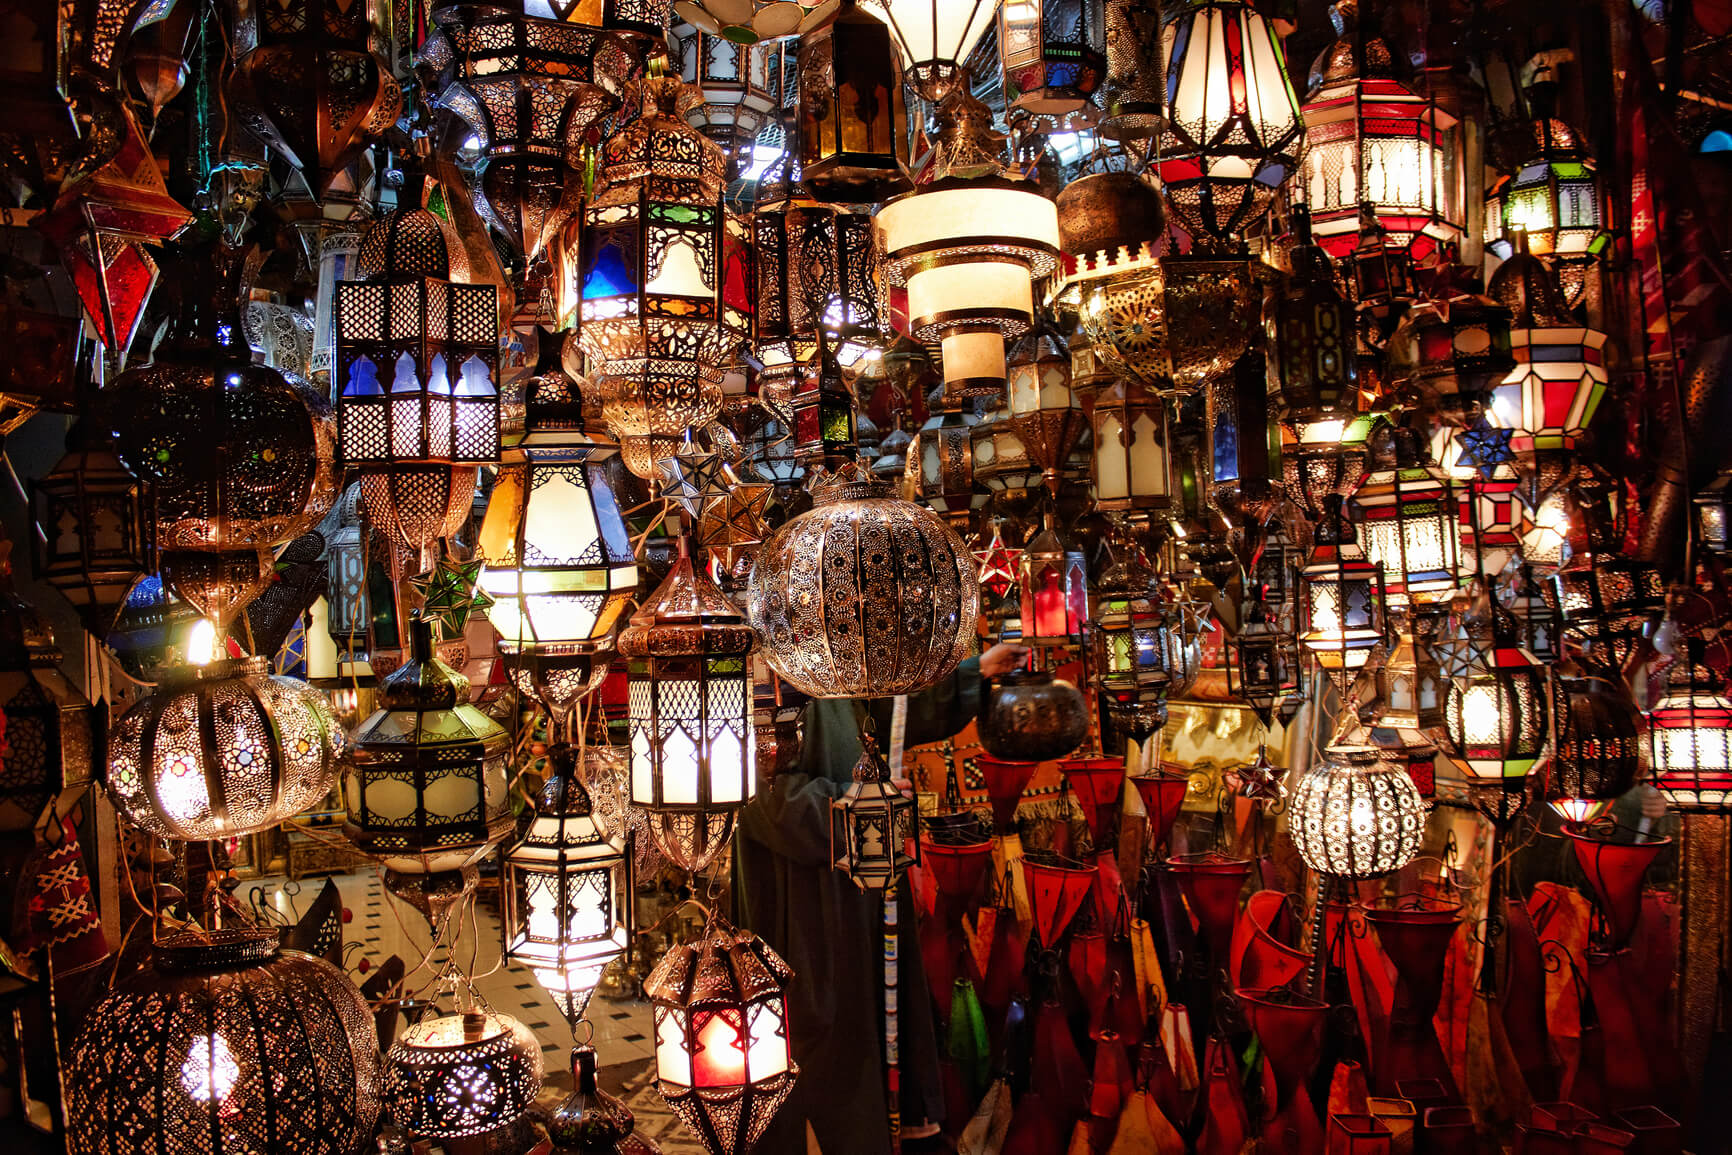 Chicago to Marrakesh, Morocco for only $513 roundtrip